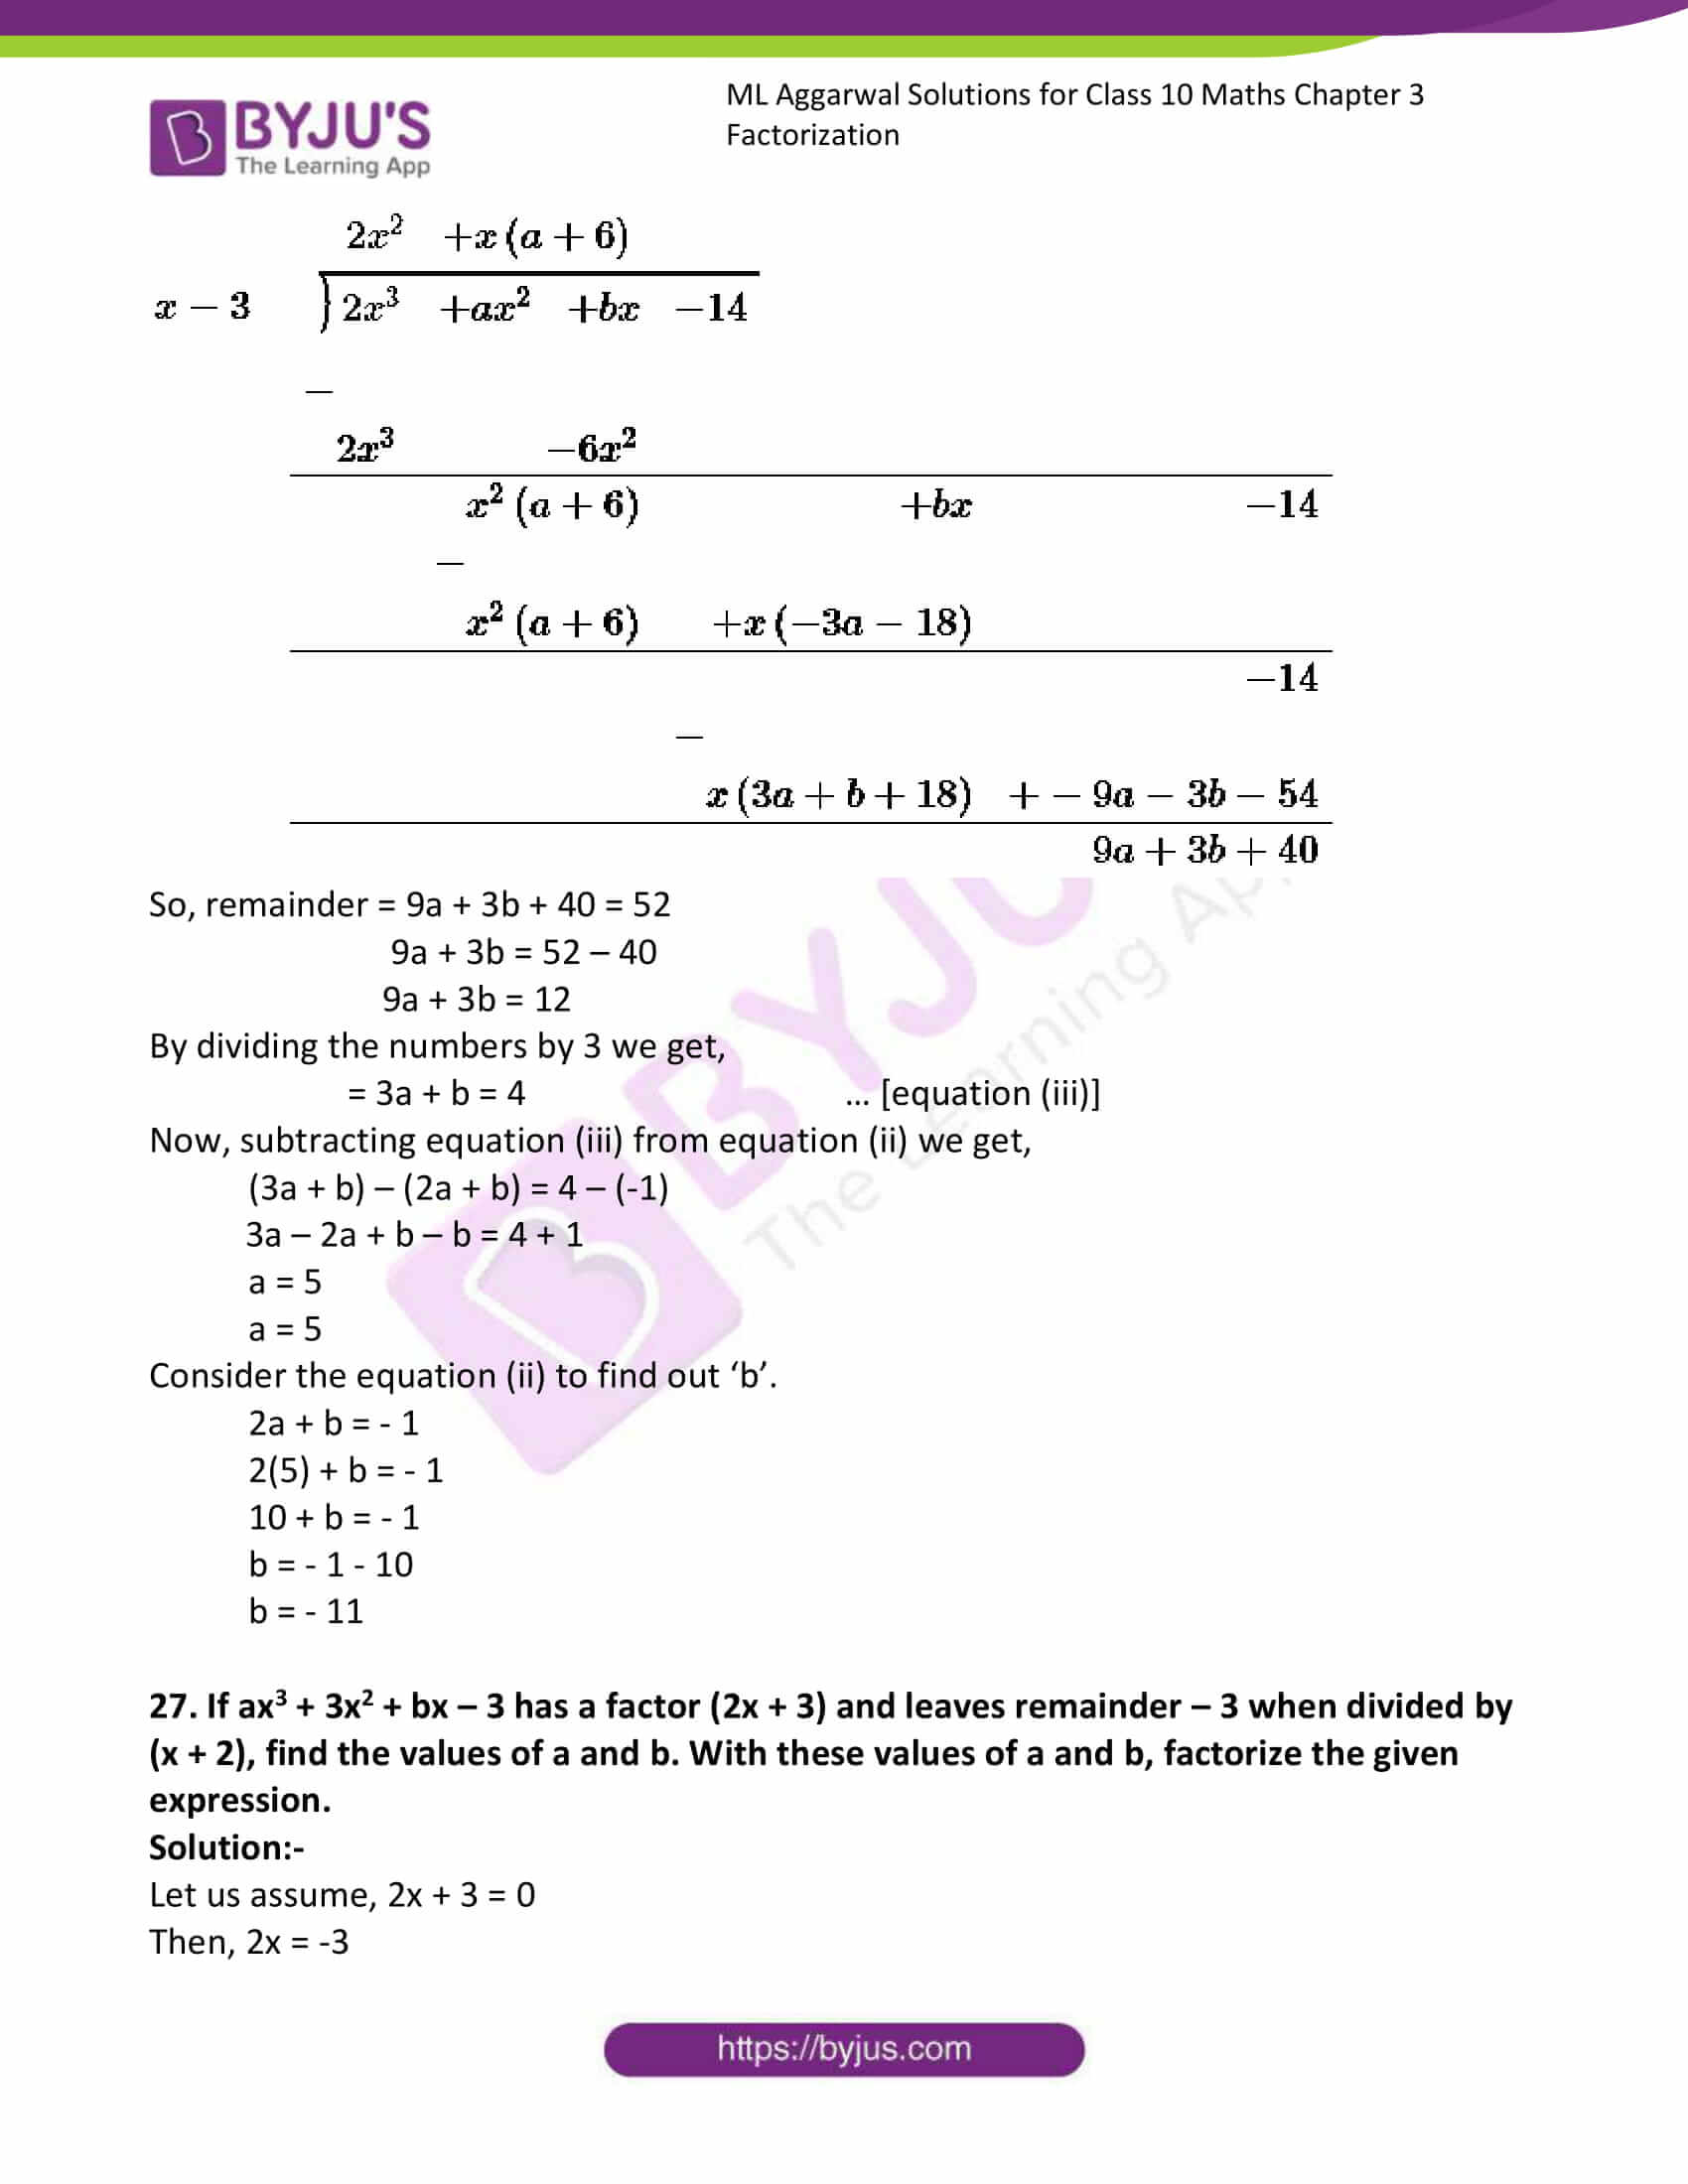 ml aggarwal solutions class 10 maths chapter 6 27